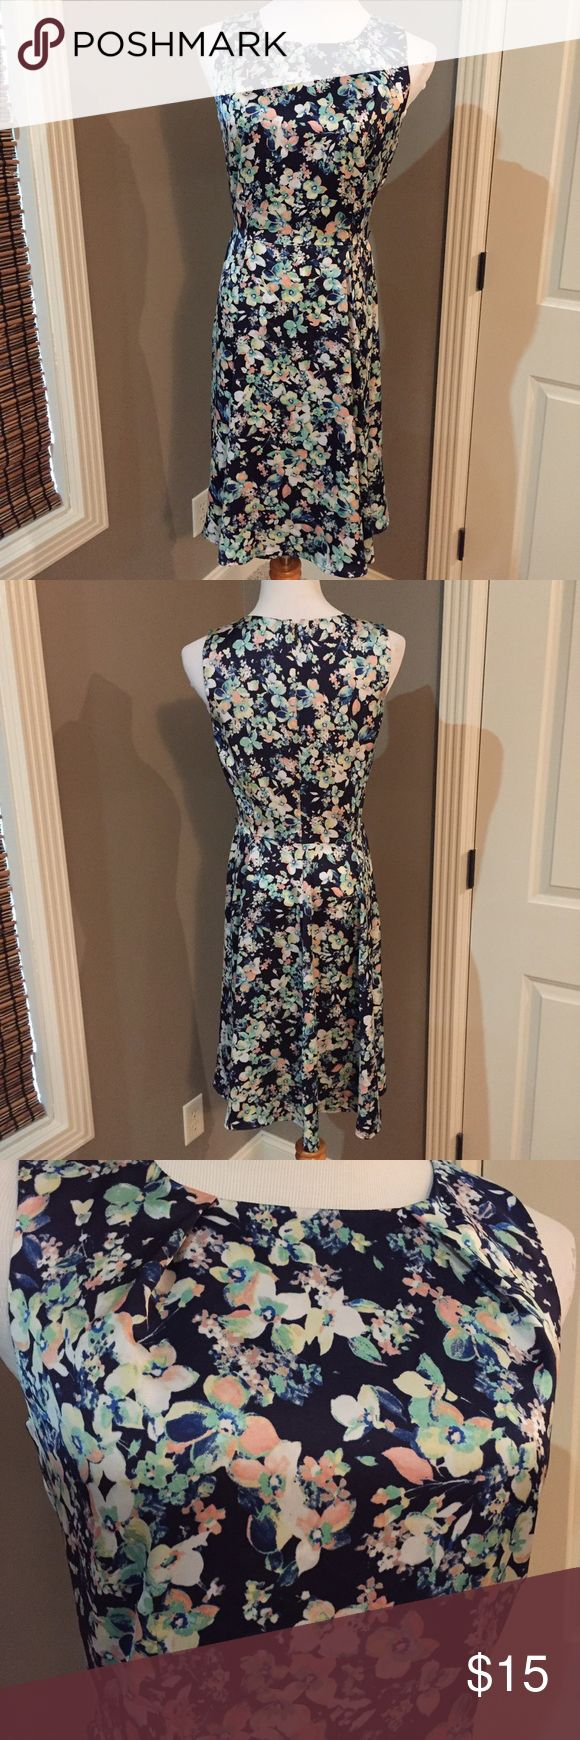 Selling this Eve Mendes dress by New York & Company on Poshmark! My username is: cbkeller. #shopmycloset #poshmark #fashion #shopping #style #forsale #NewYorkandCompany #Dresses